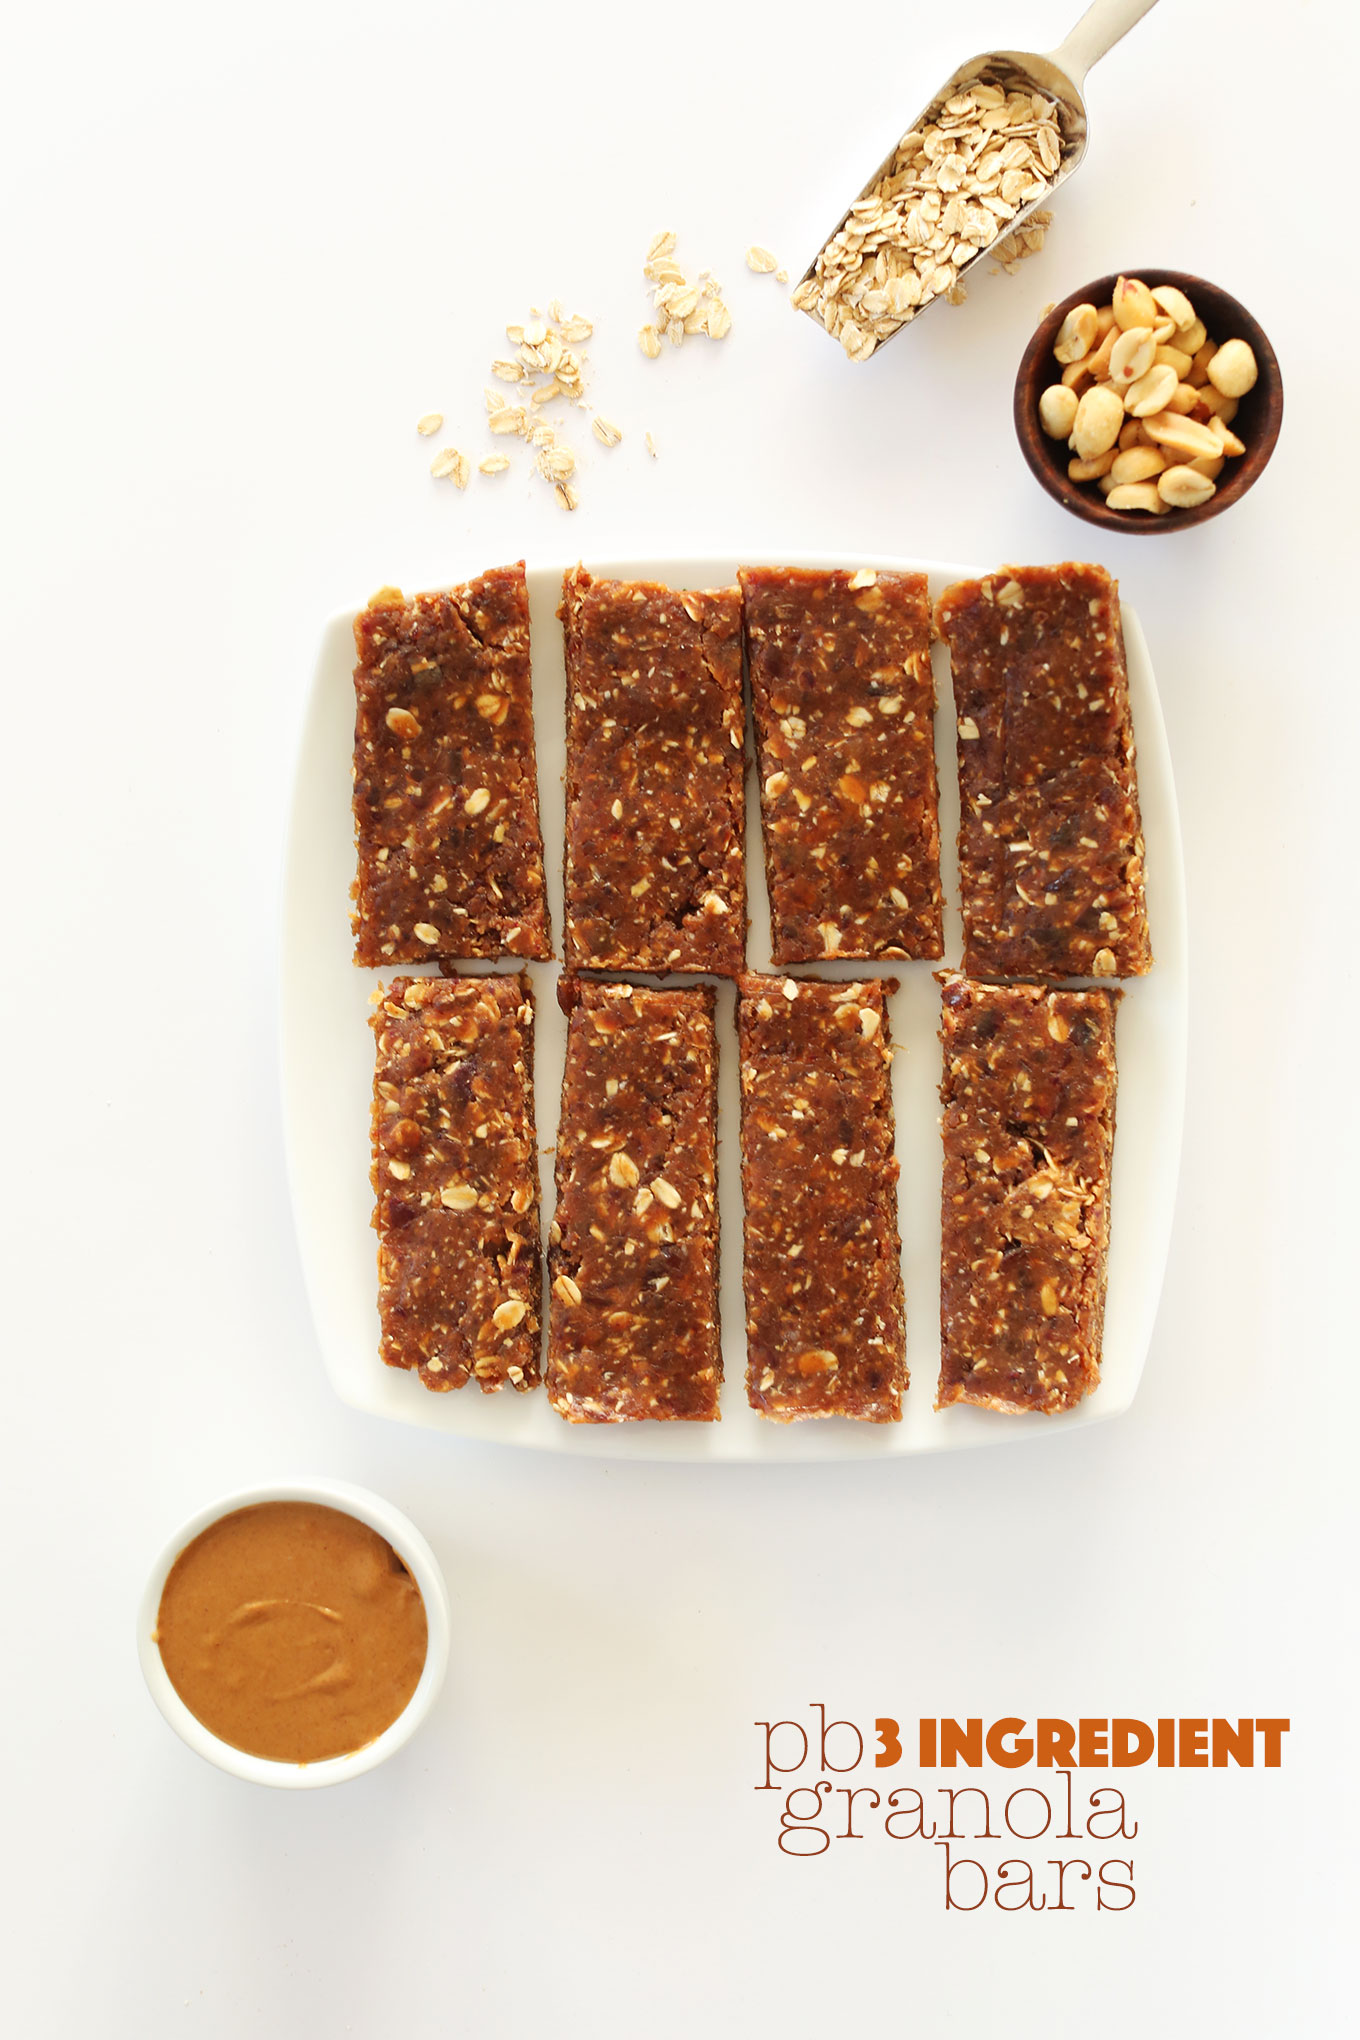 Plate of our amazing 3-ingredient gluten-free Peanut Butter Granola Bars